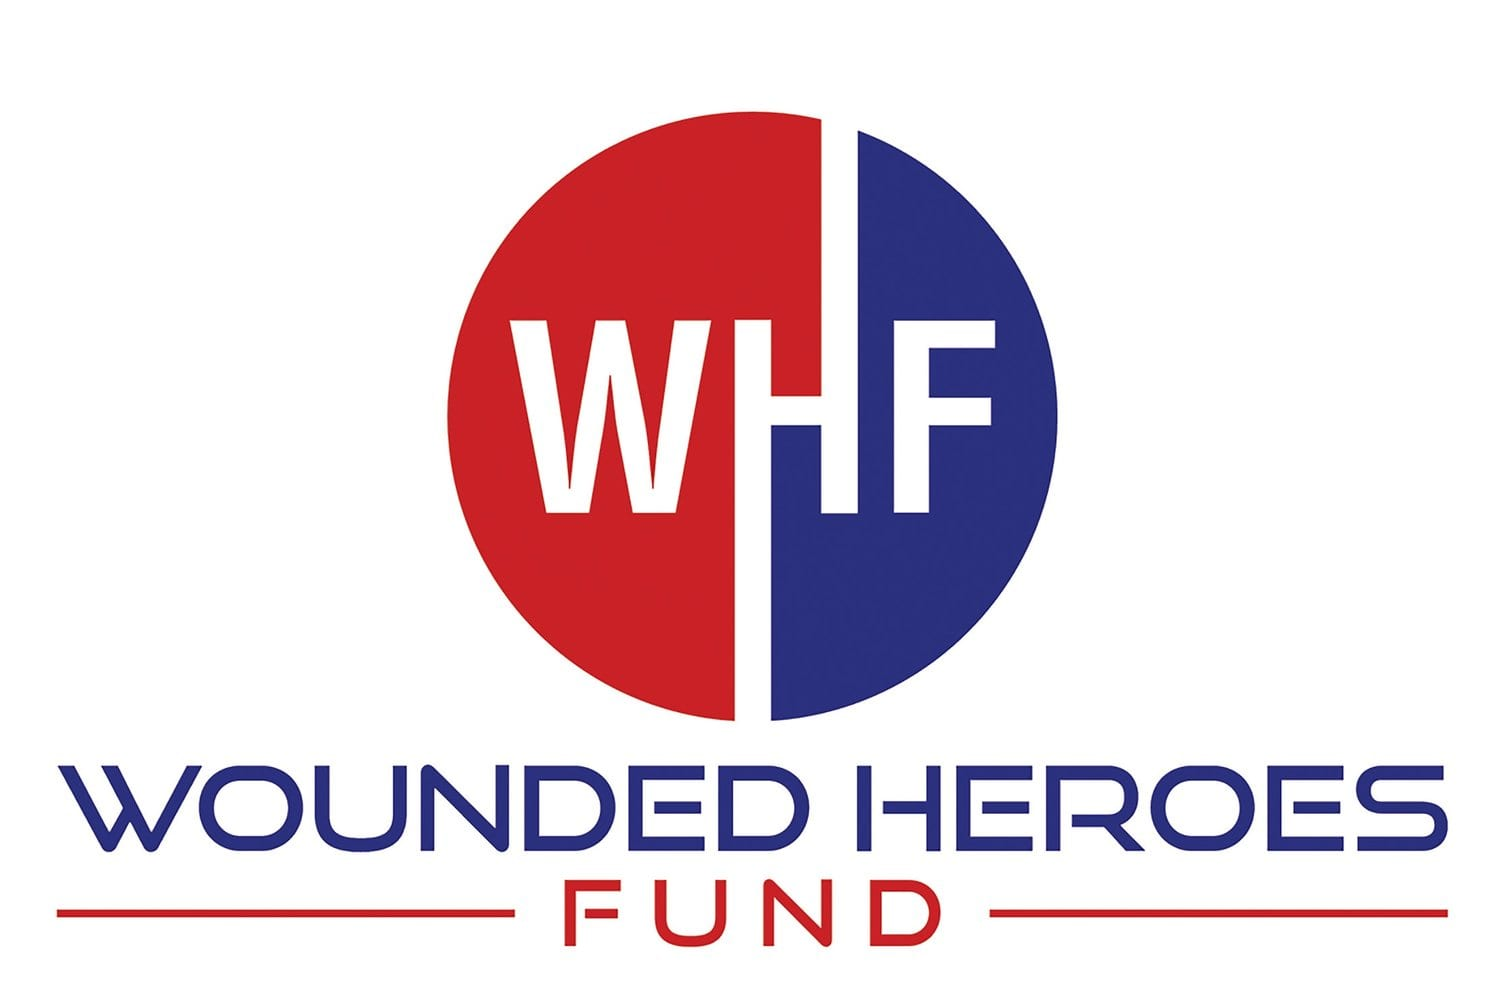 Wounded Heroes Fund